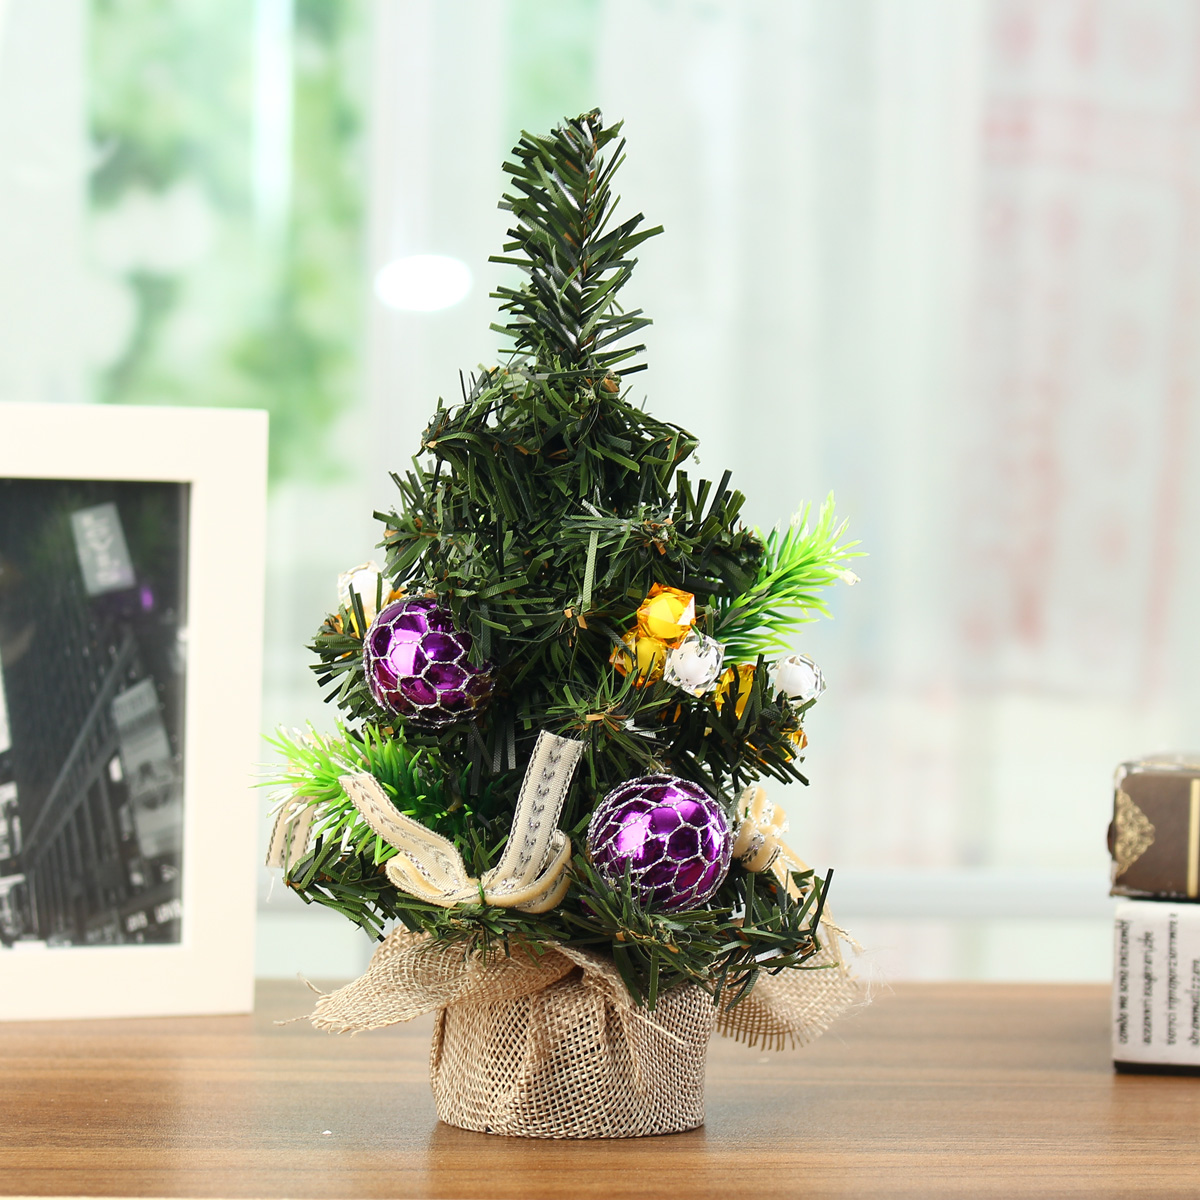 Mini Christmas tree decoration,Christmas Day exquisite decorations with jewelry,20cm